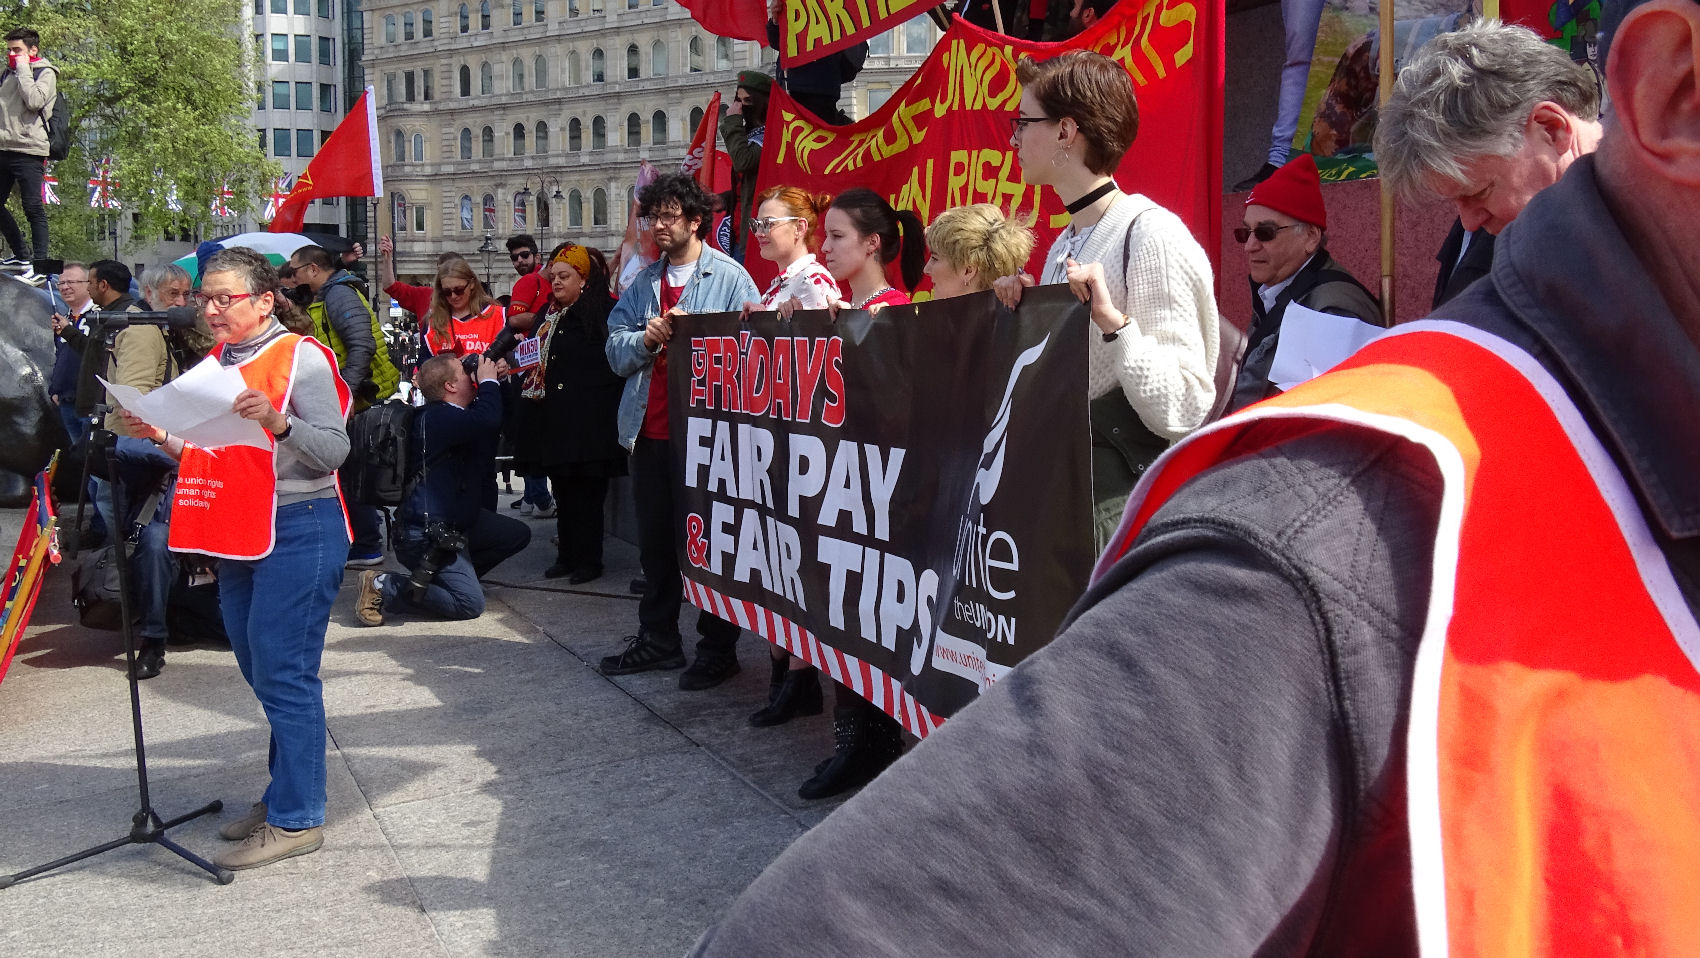 TGI FRIDAYS WORKERS INTRODUCED TO RALLY BY EVE TURNER